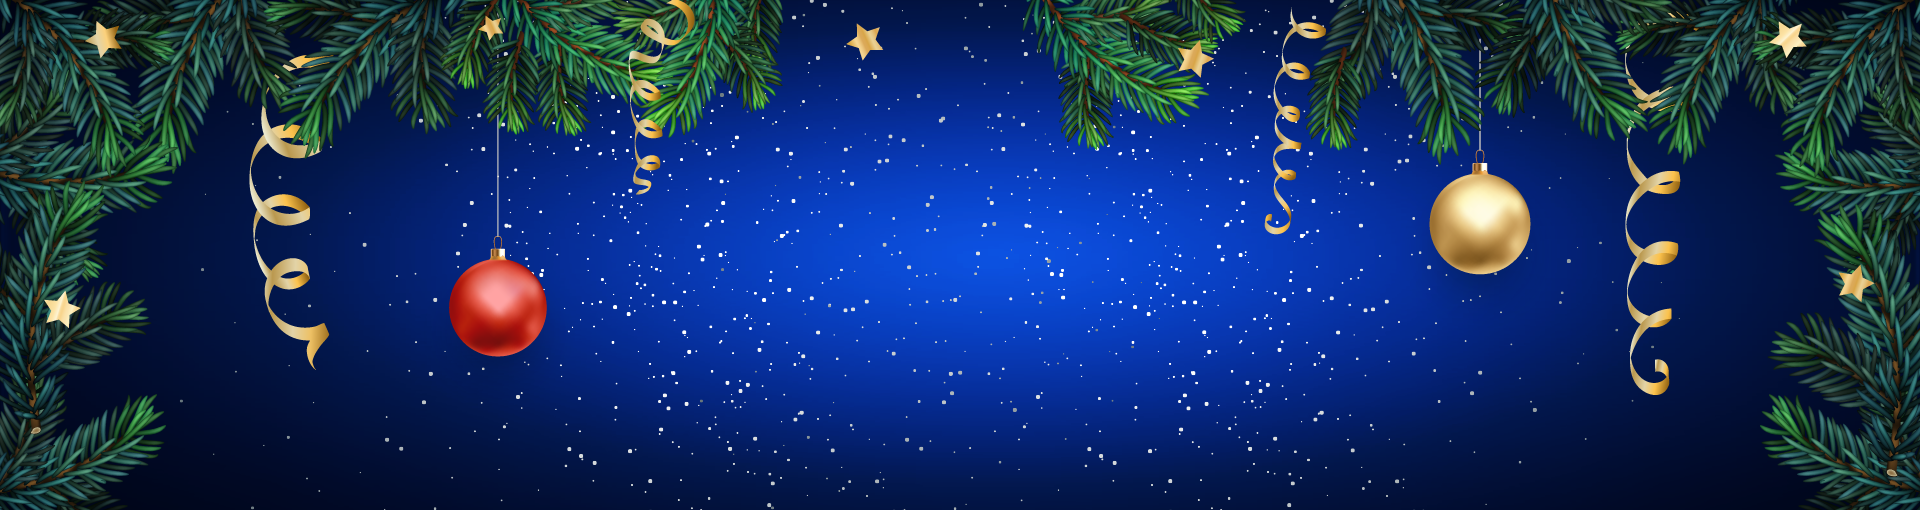 banner-christmas-2018-03_5a3bc2e07edfe.png